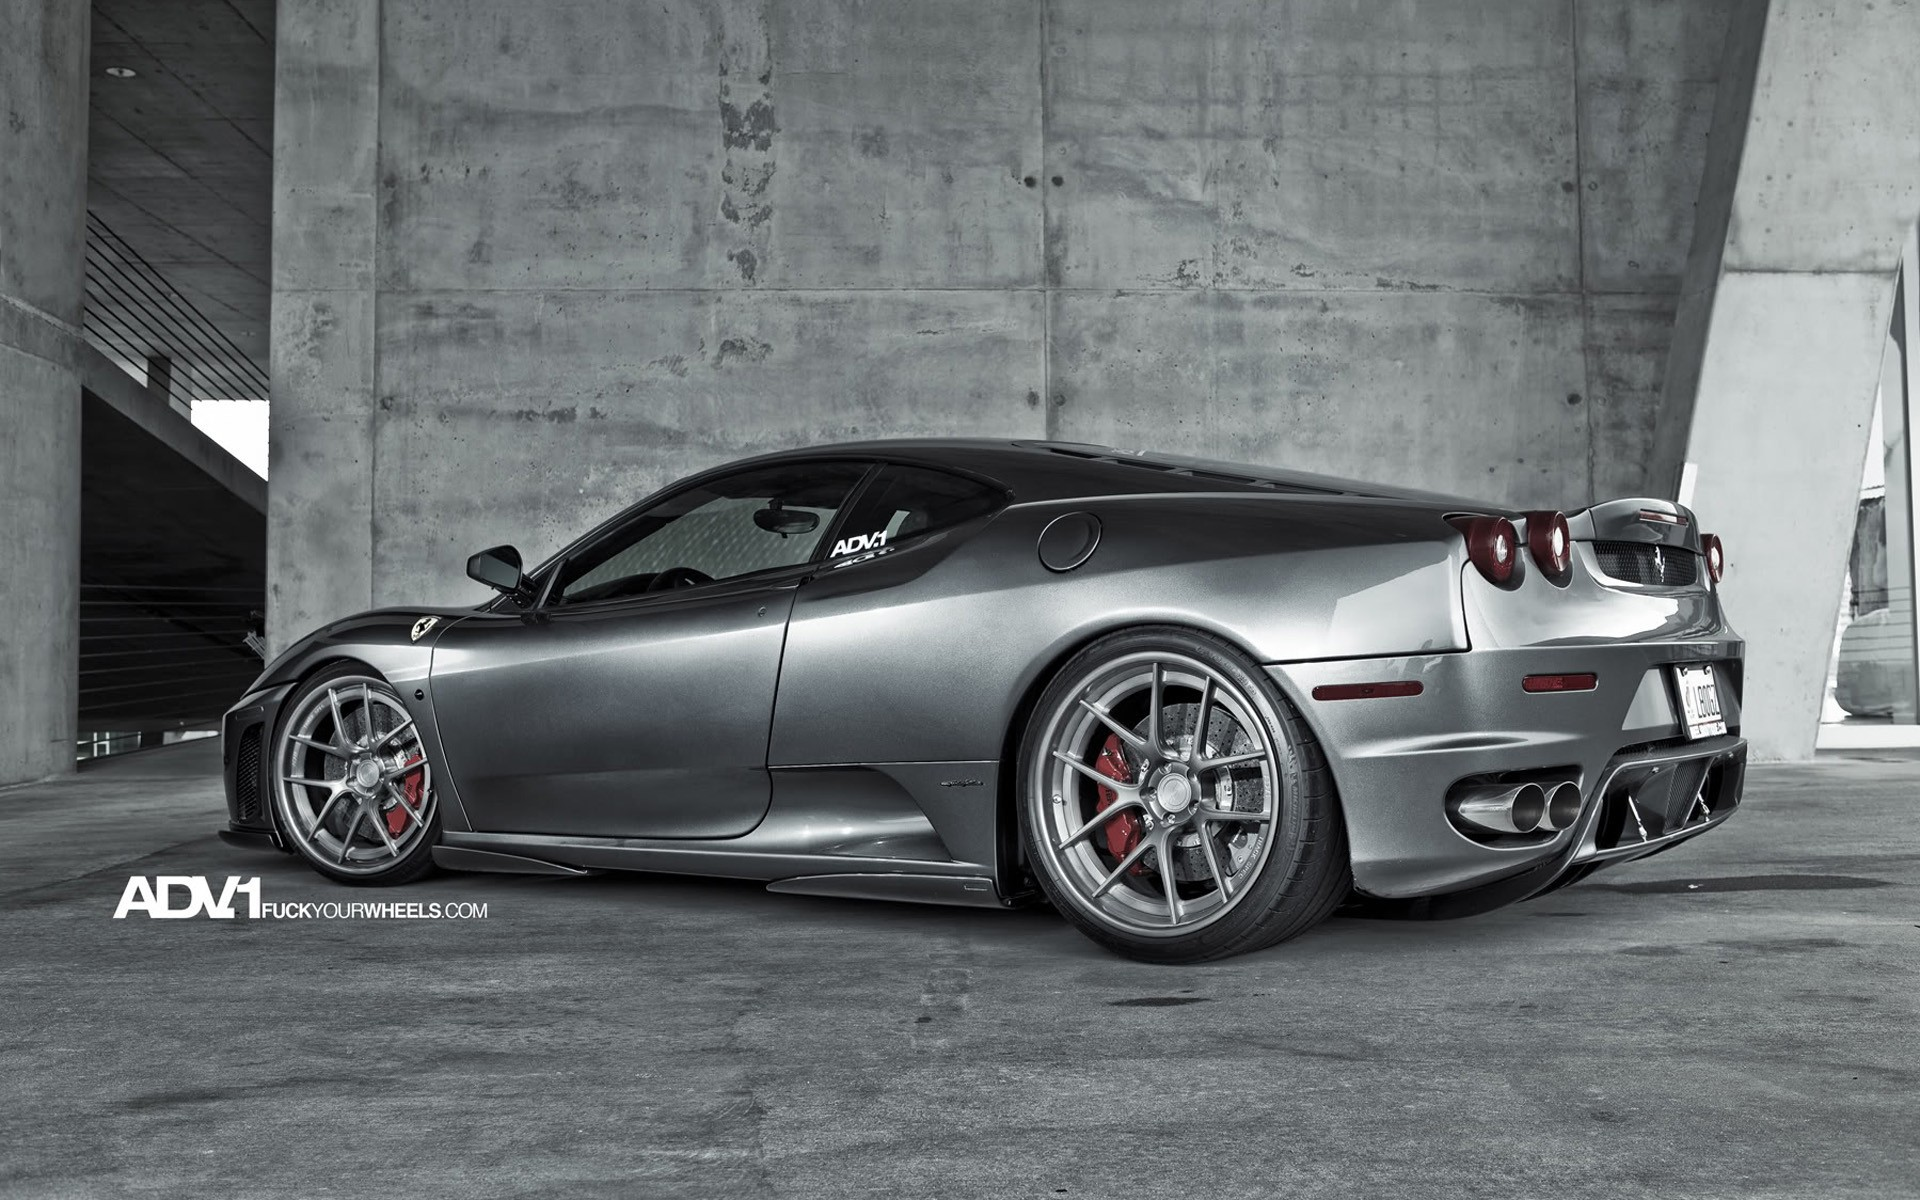 Ferrari F430 Tuning Wallpapers Images Photos Pictures